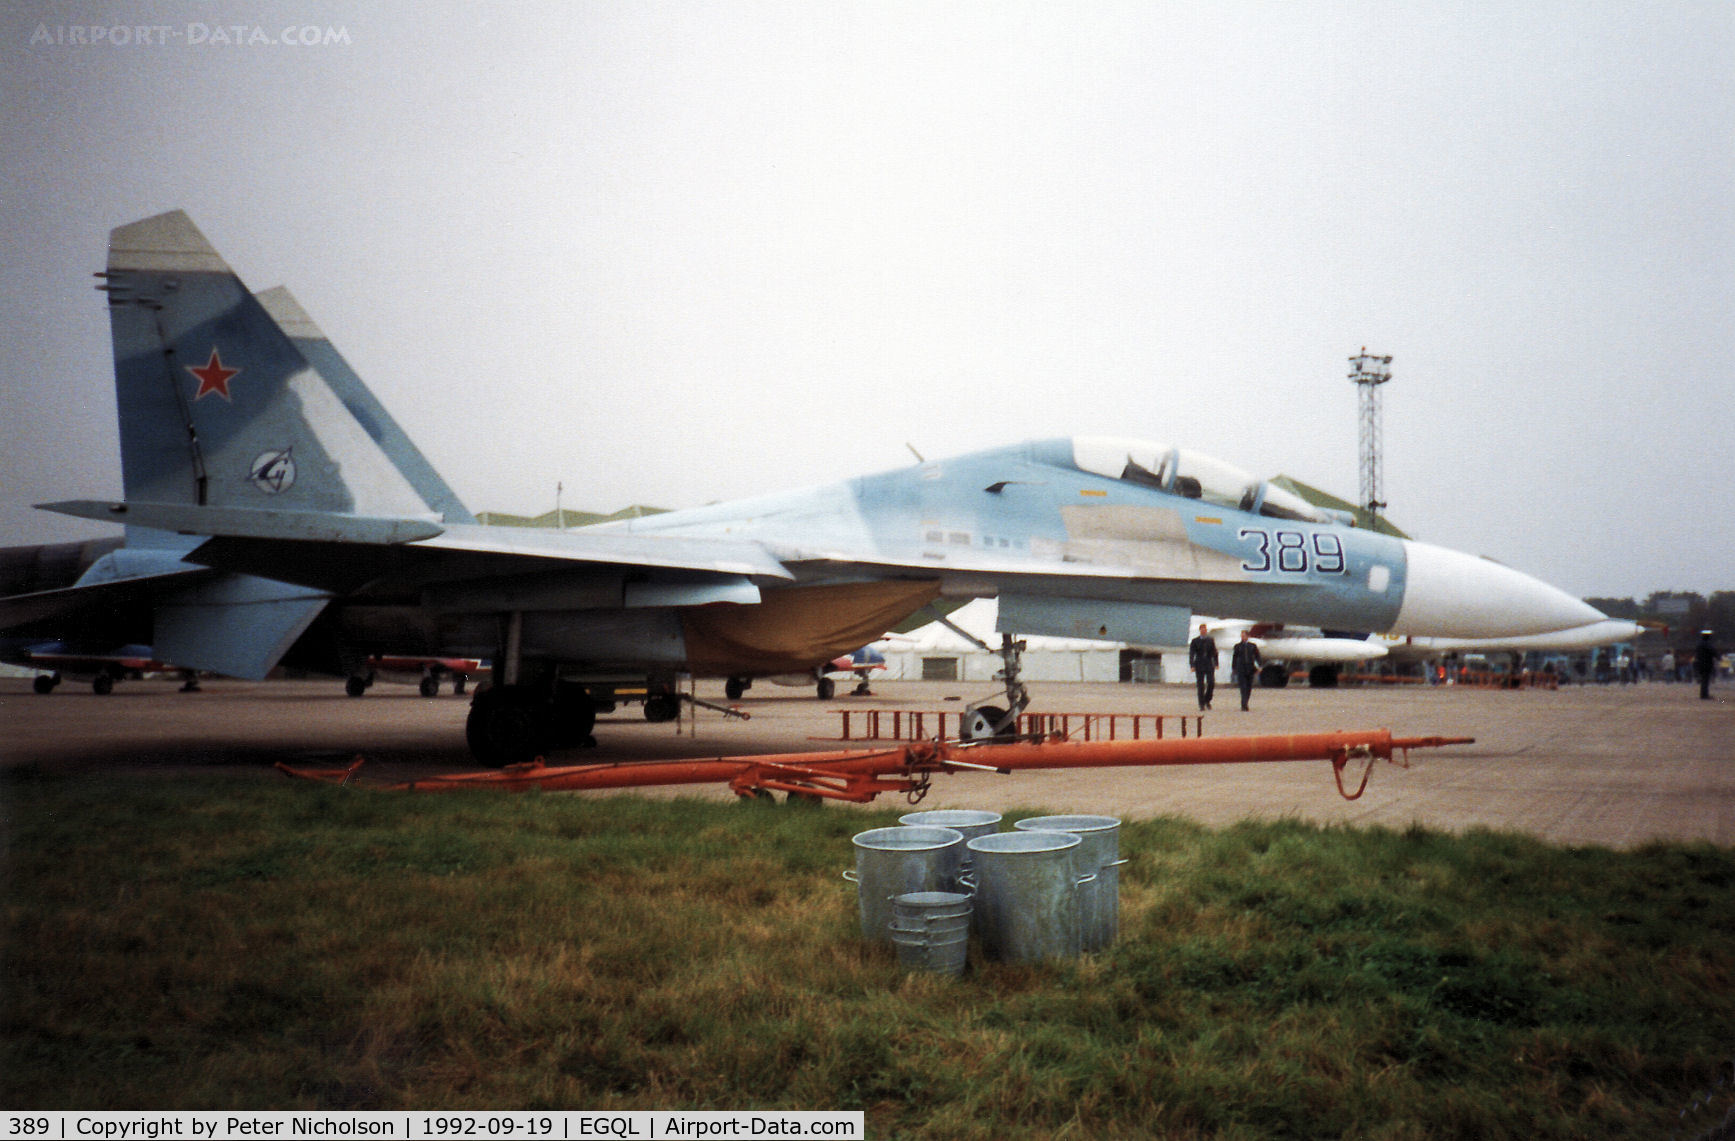 389, Sukhoi Su-27UB C/N 25389, Su-27B Flanker on display at the 1992 RAF Leuchars Airshow.